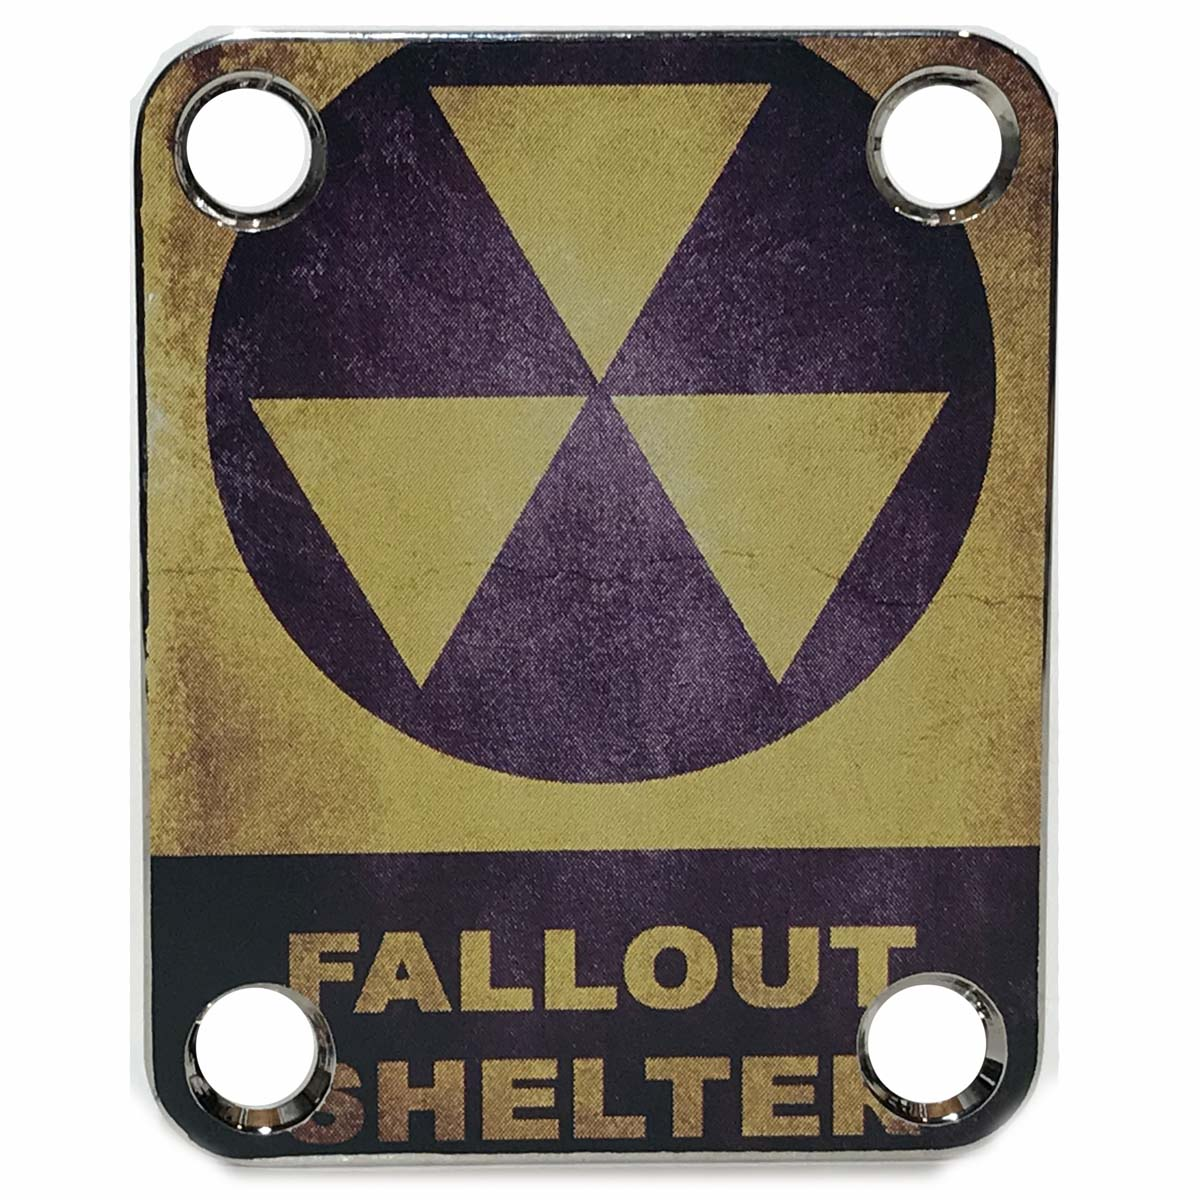 Custom Shop COLOR Fallout Shelter Neck plate- 045